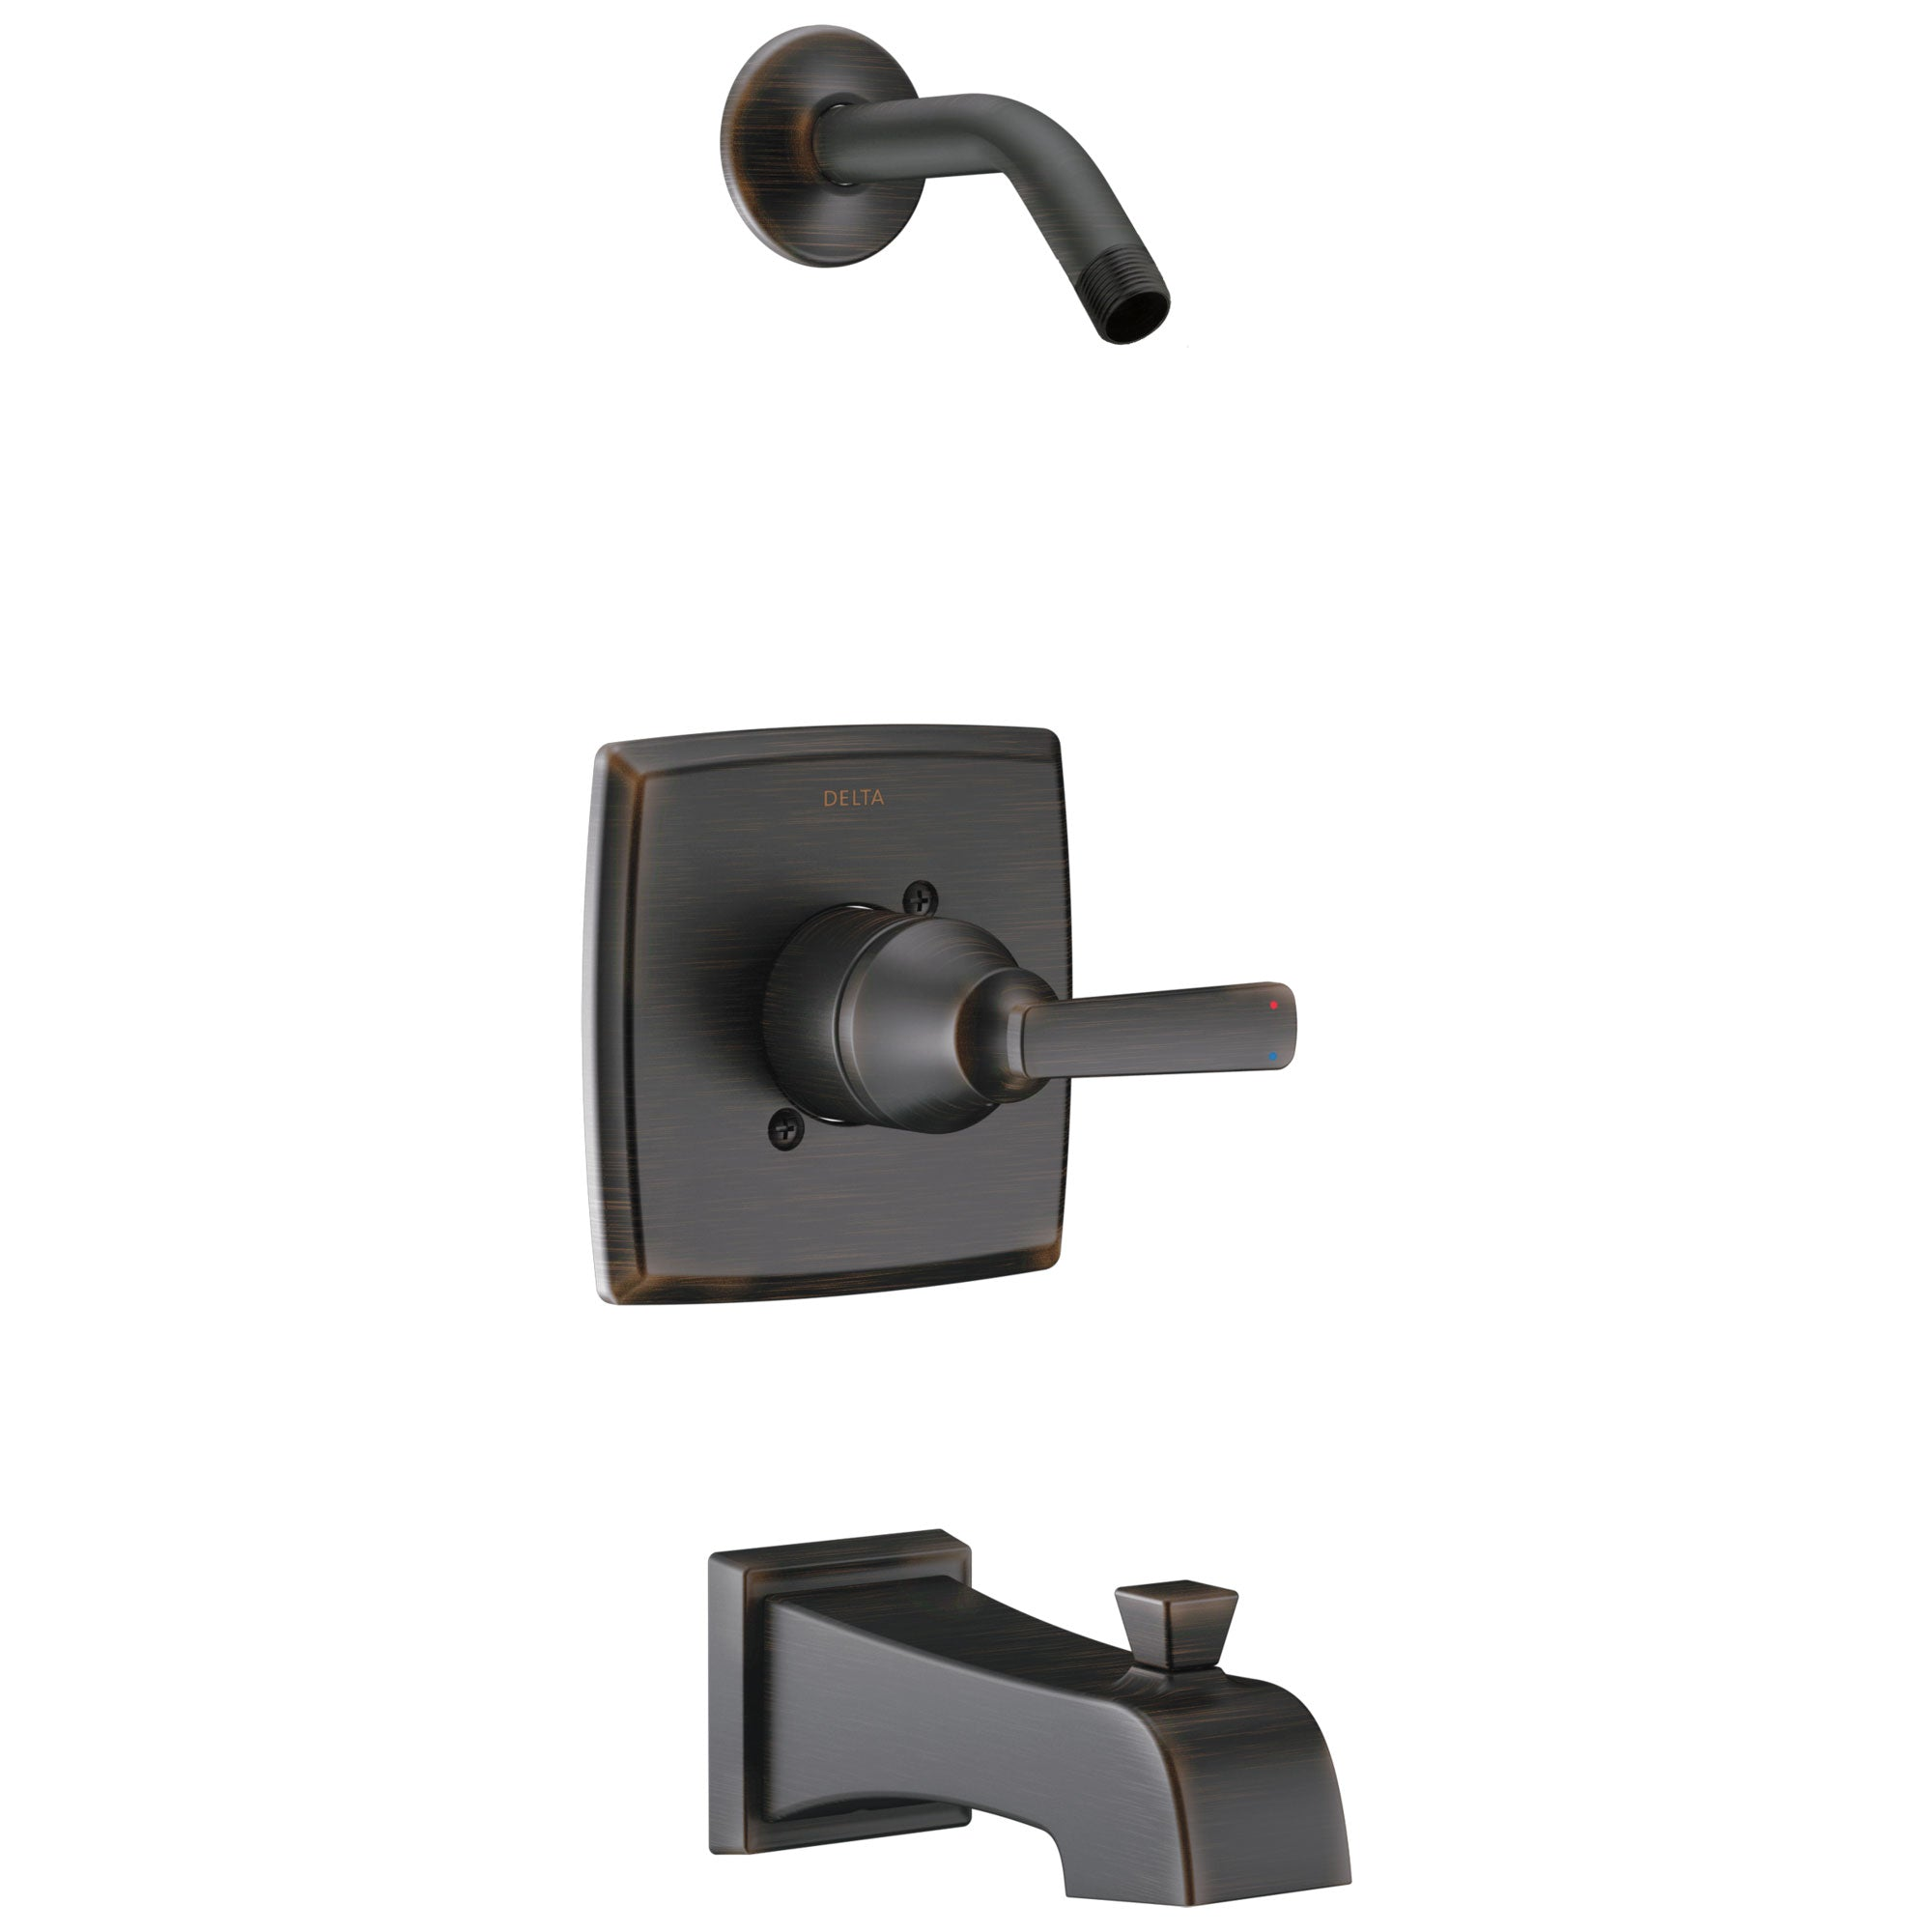 Delta Ashlyn Collection Venetian Bronze Monitor 14 Stylish Tub & Shower Combination Faucet Trim - Less Showerhead Includes Valve without Stops D2389V